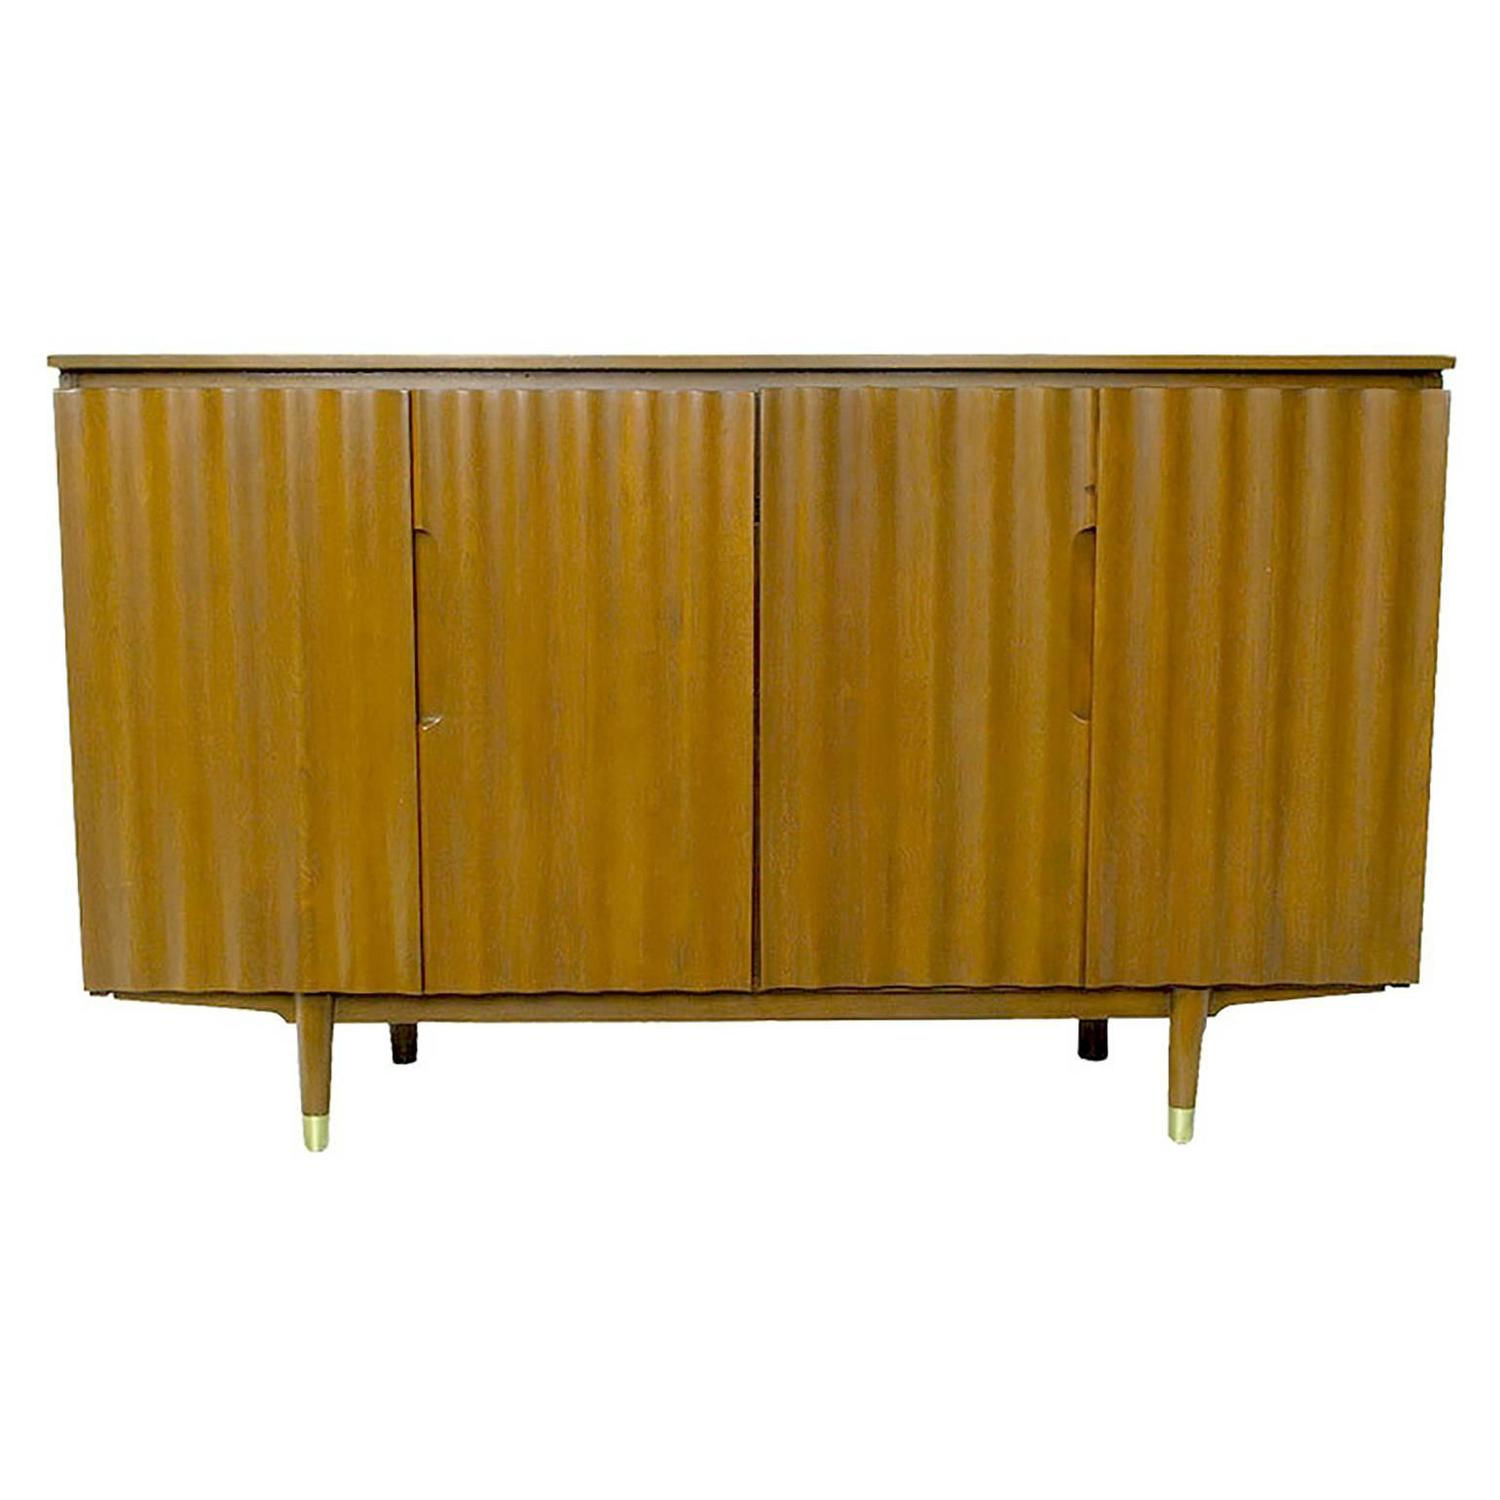 Imperial furniture - Jan Kuypers Wave Front Birch Sideboard By Imperial Of Canada